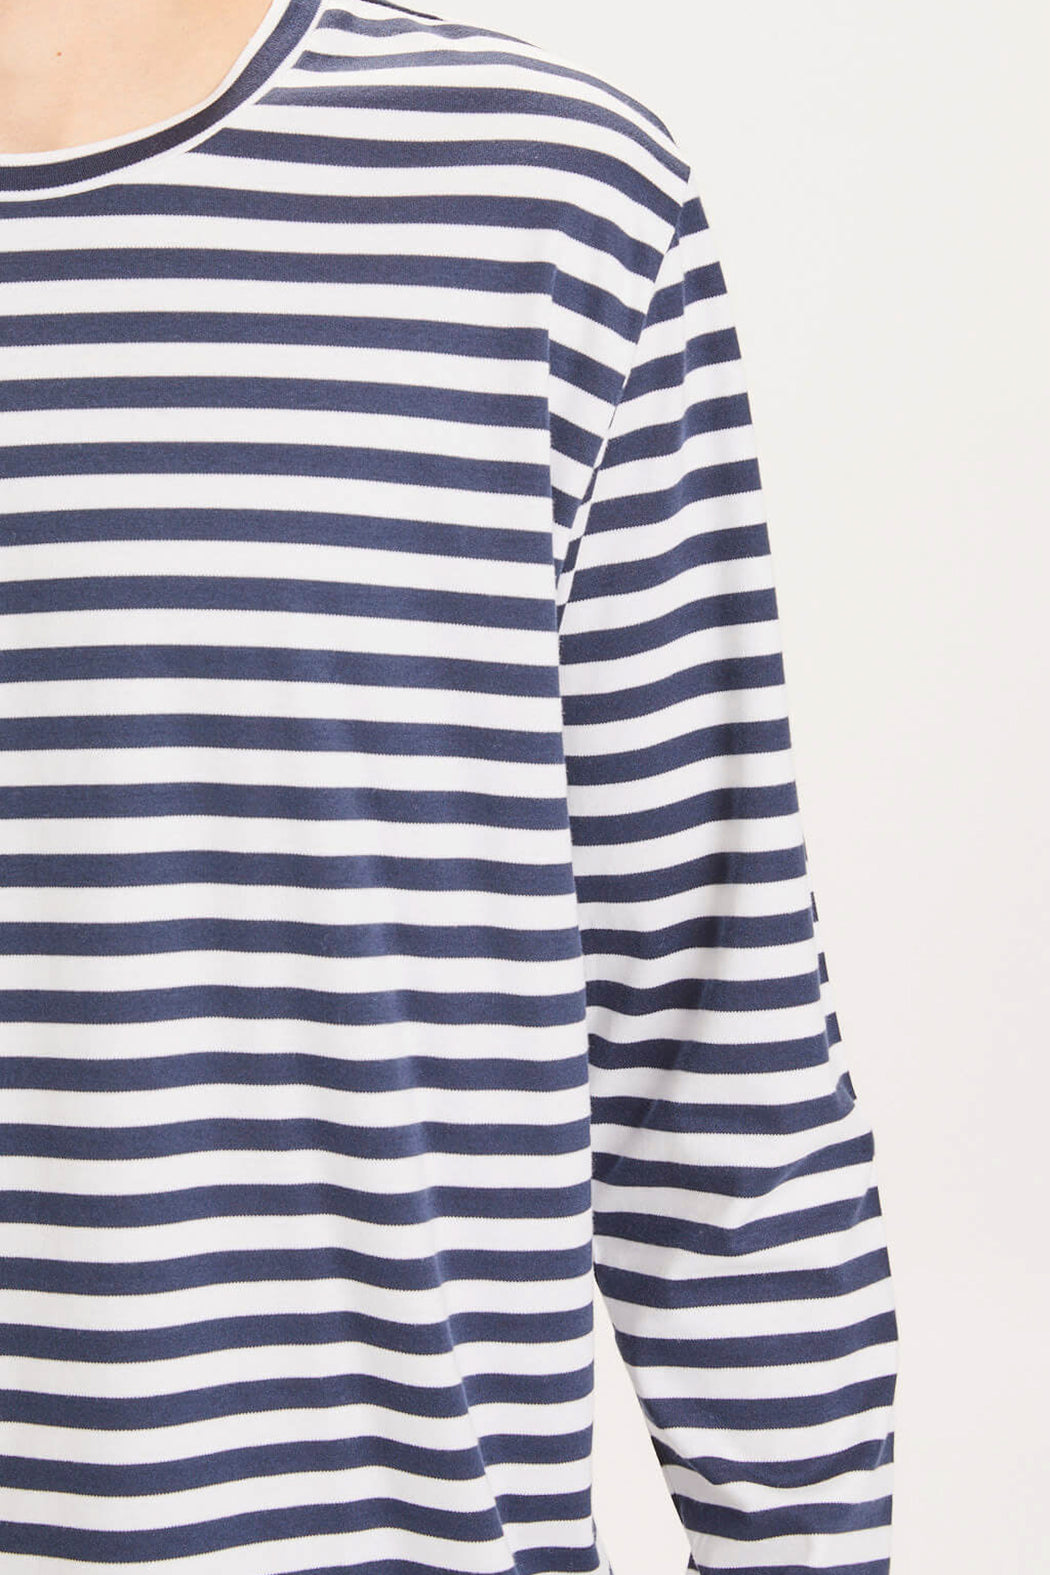 LOCUST Striped Long Sleeve total eclipse